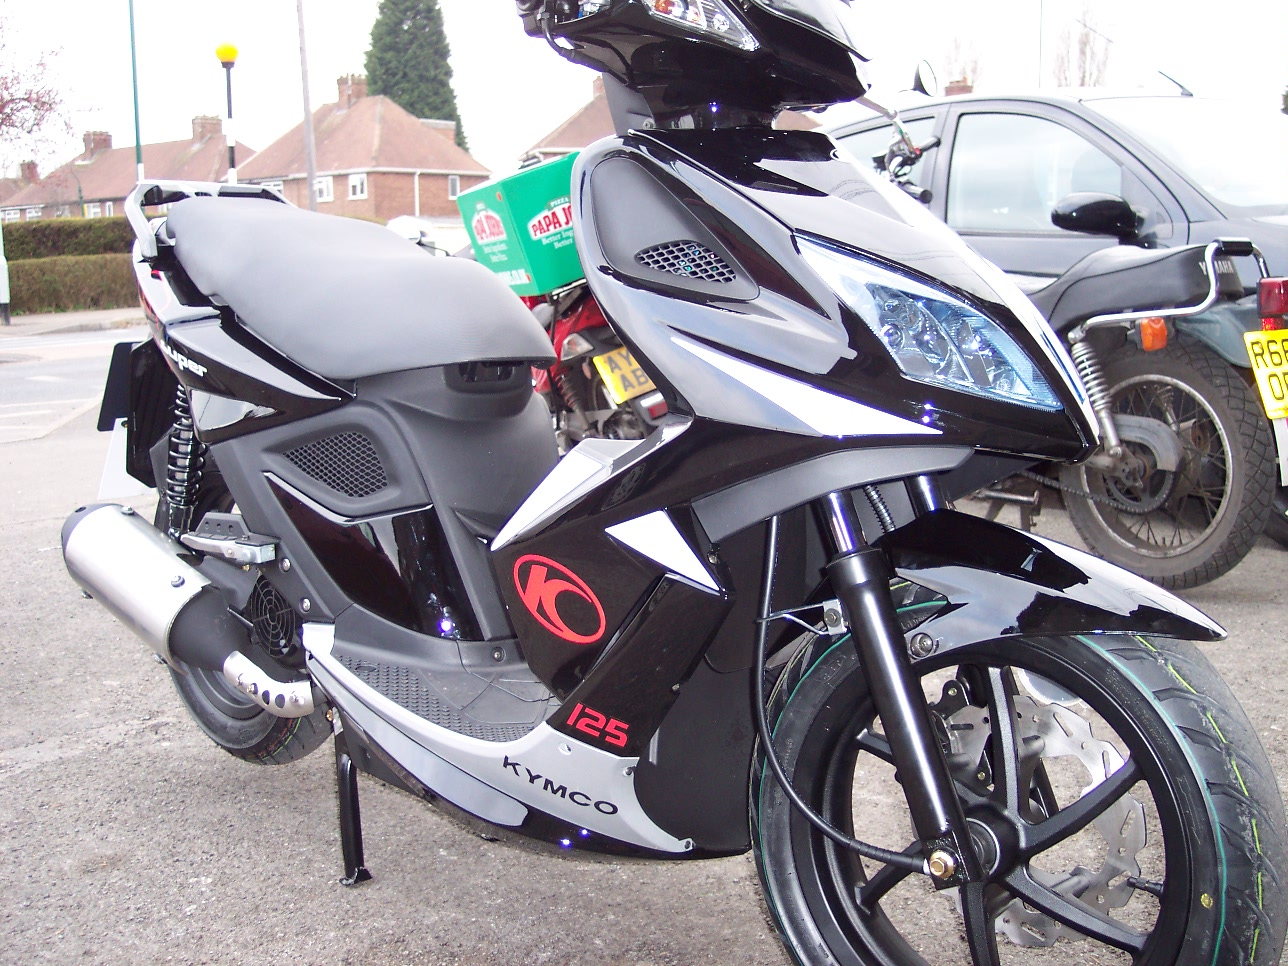 Kymco Super 8 50 2T 2011 images #101262